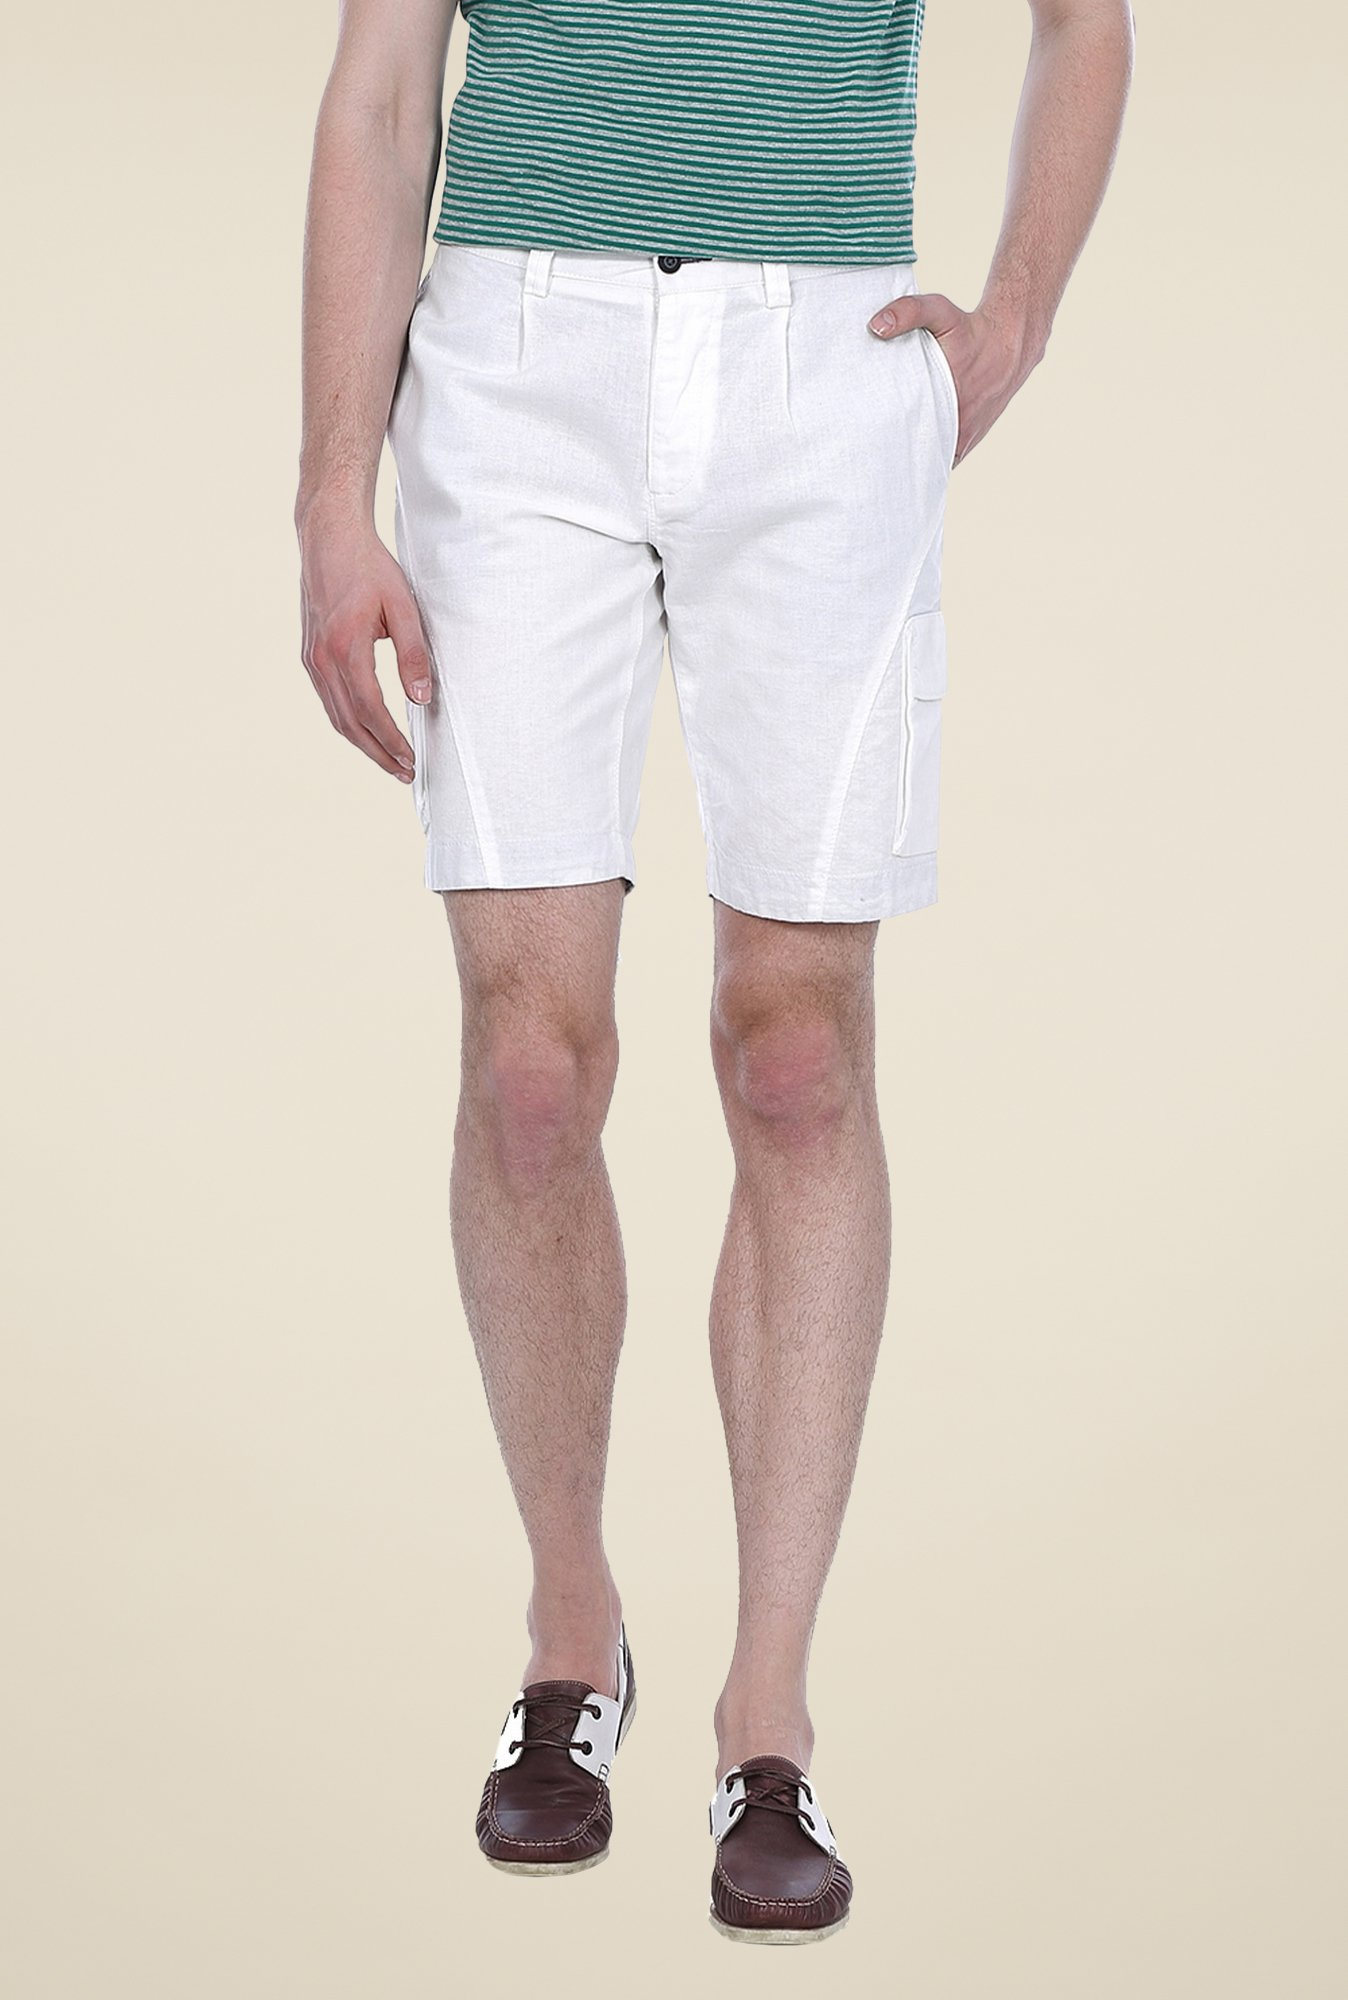 Basics White Solid Shorts